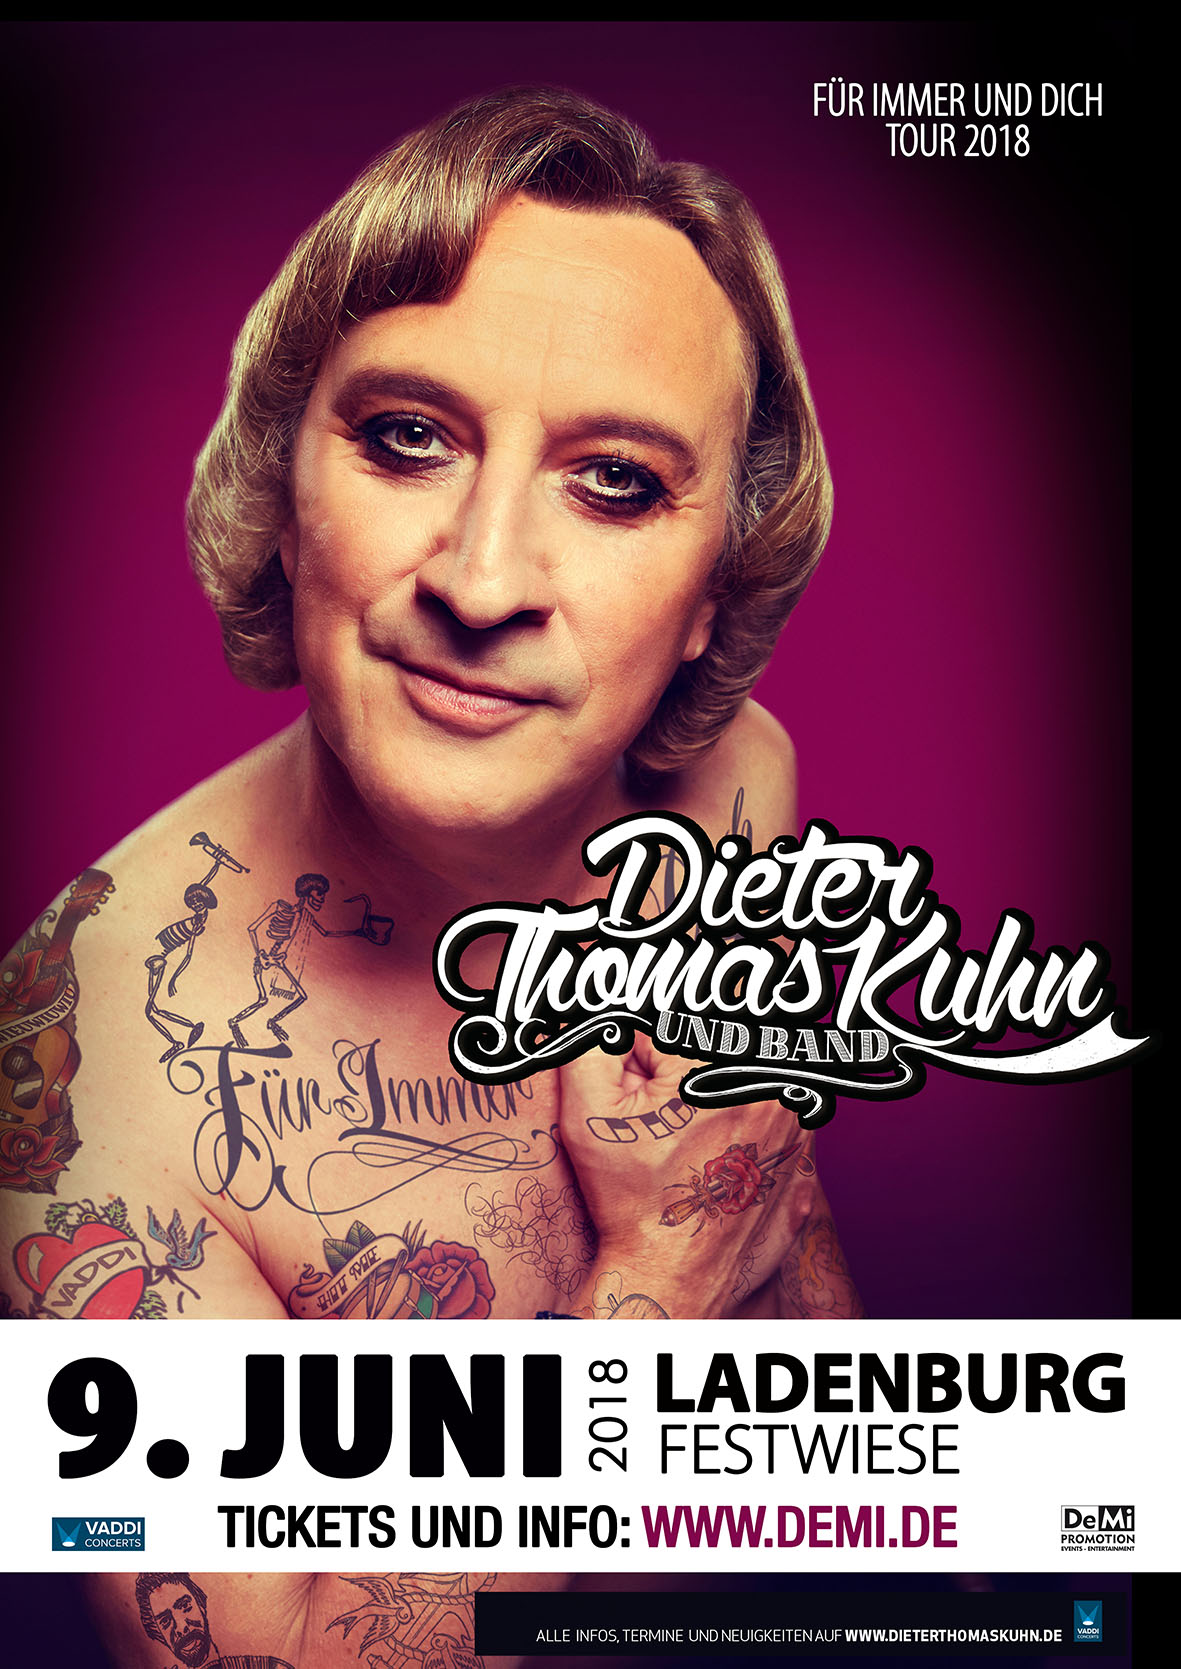 DIETER THOMAS KUHN • LADENBURG